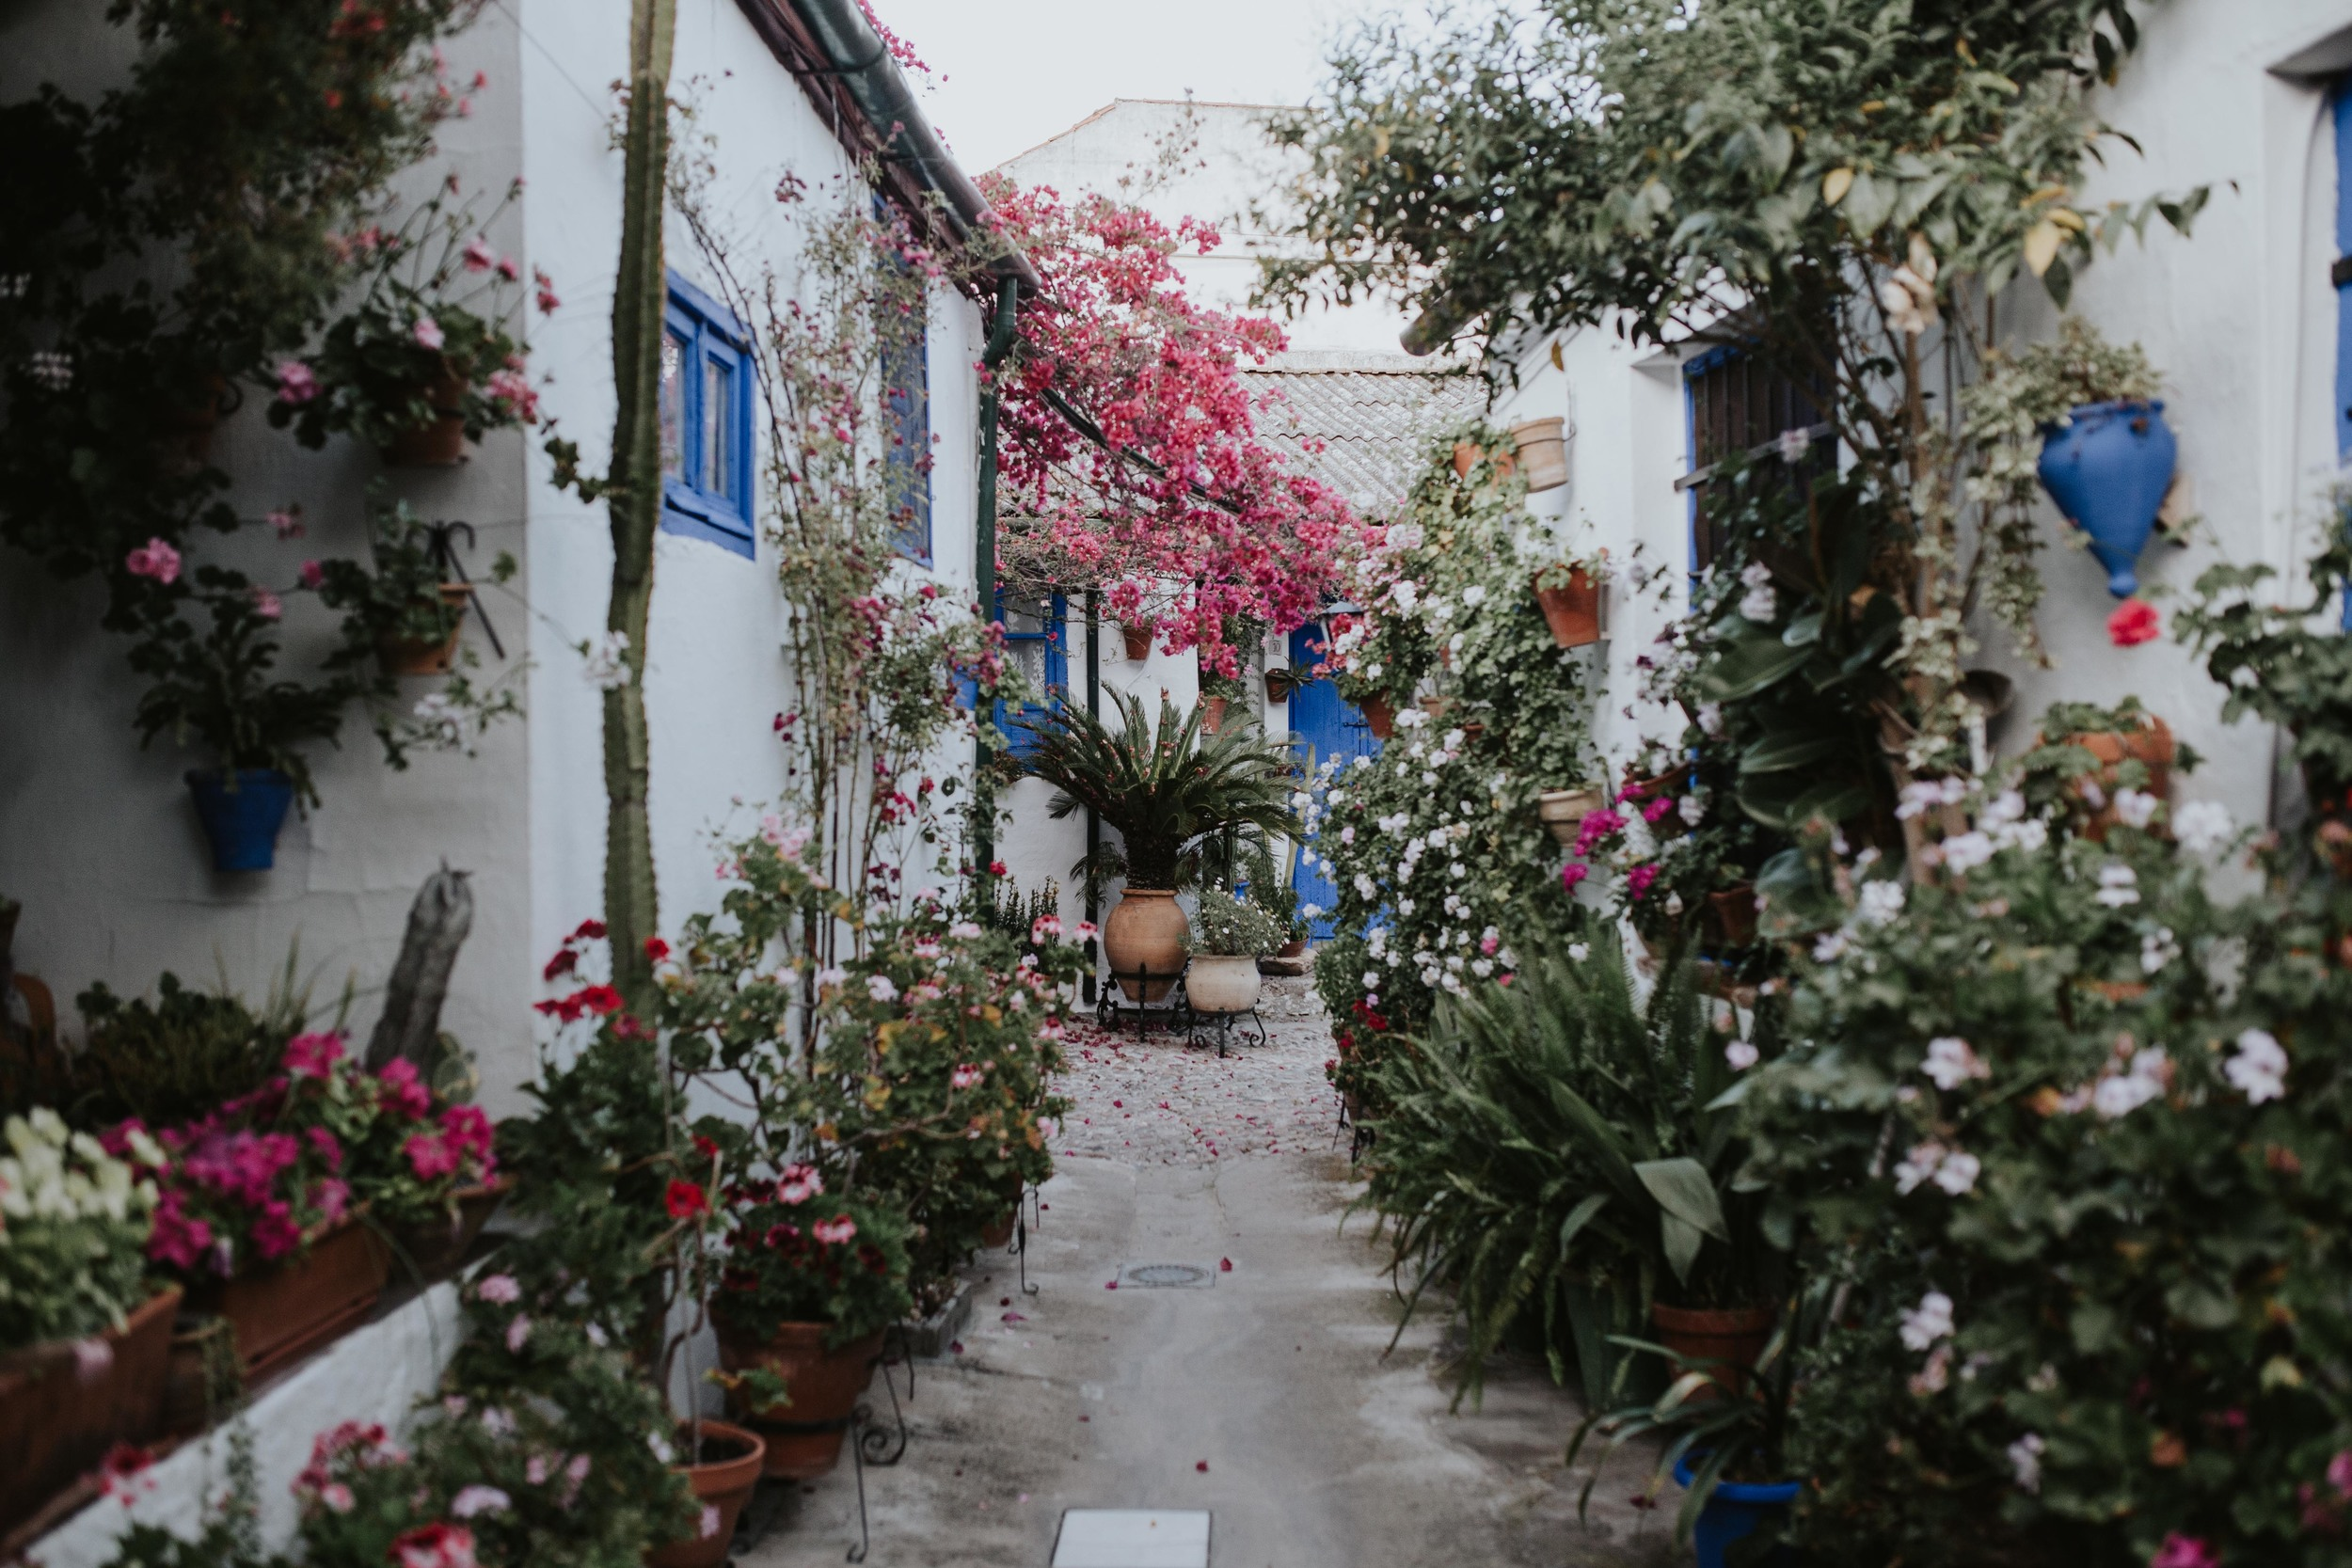 The patios of Cordoba - Wedding inpiration